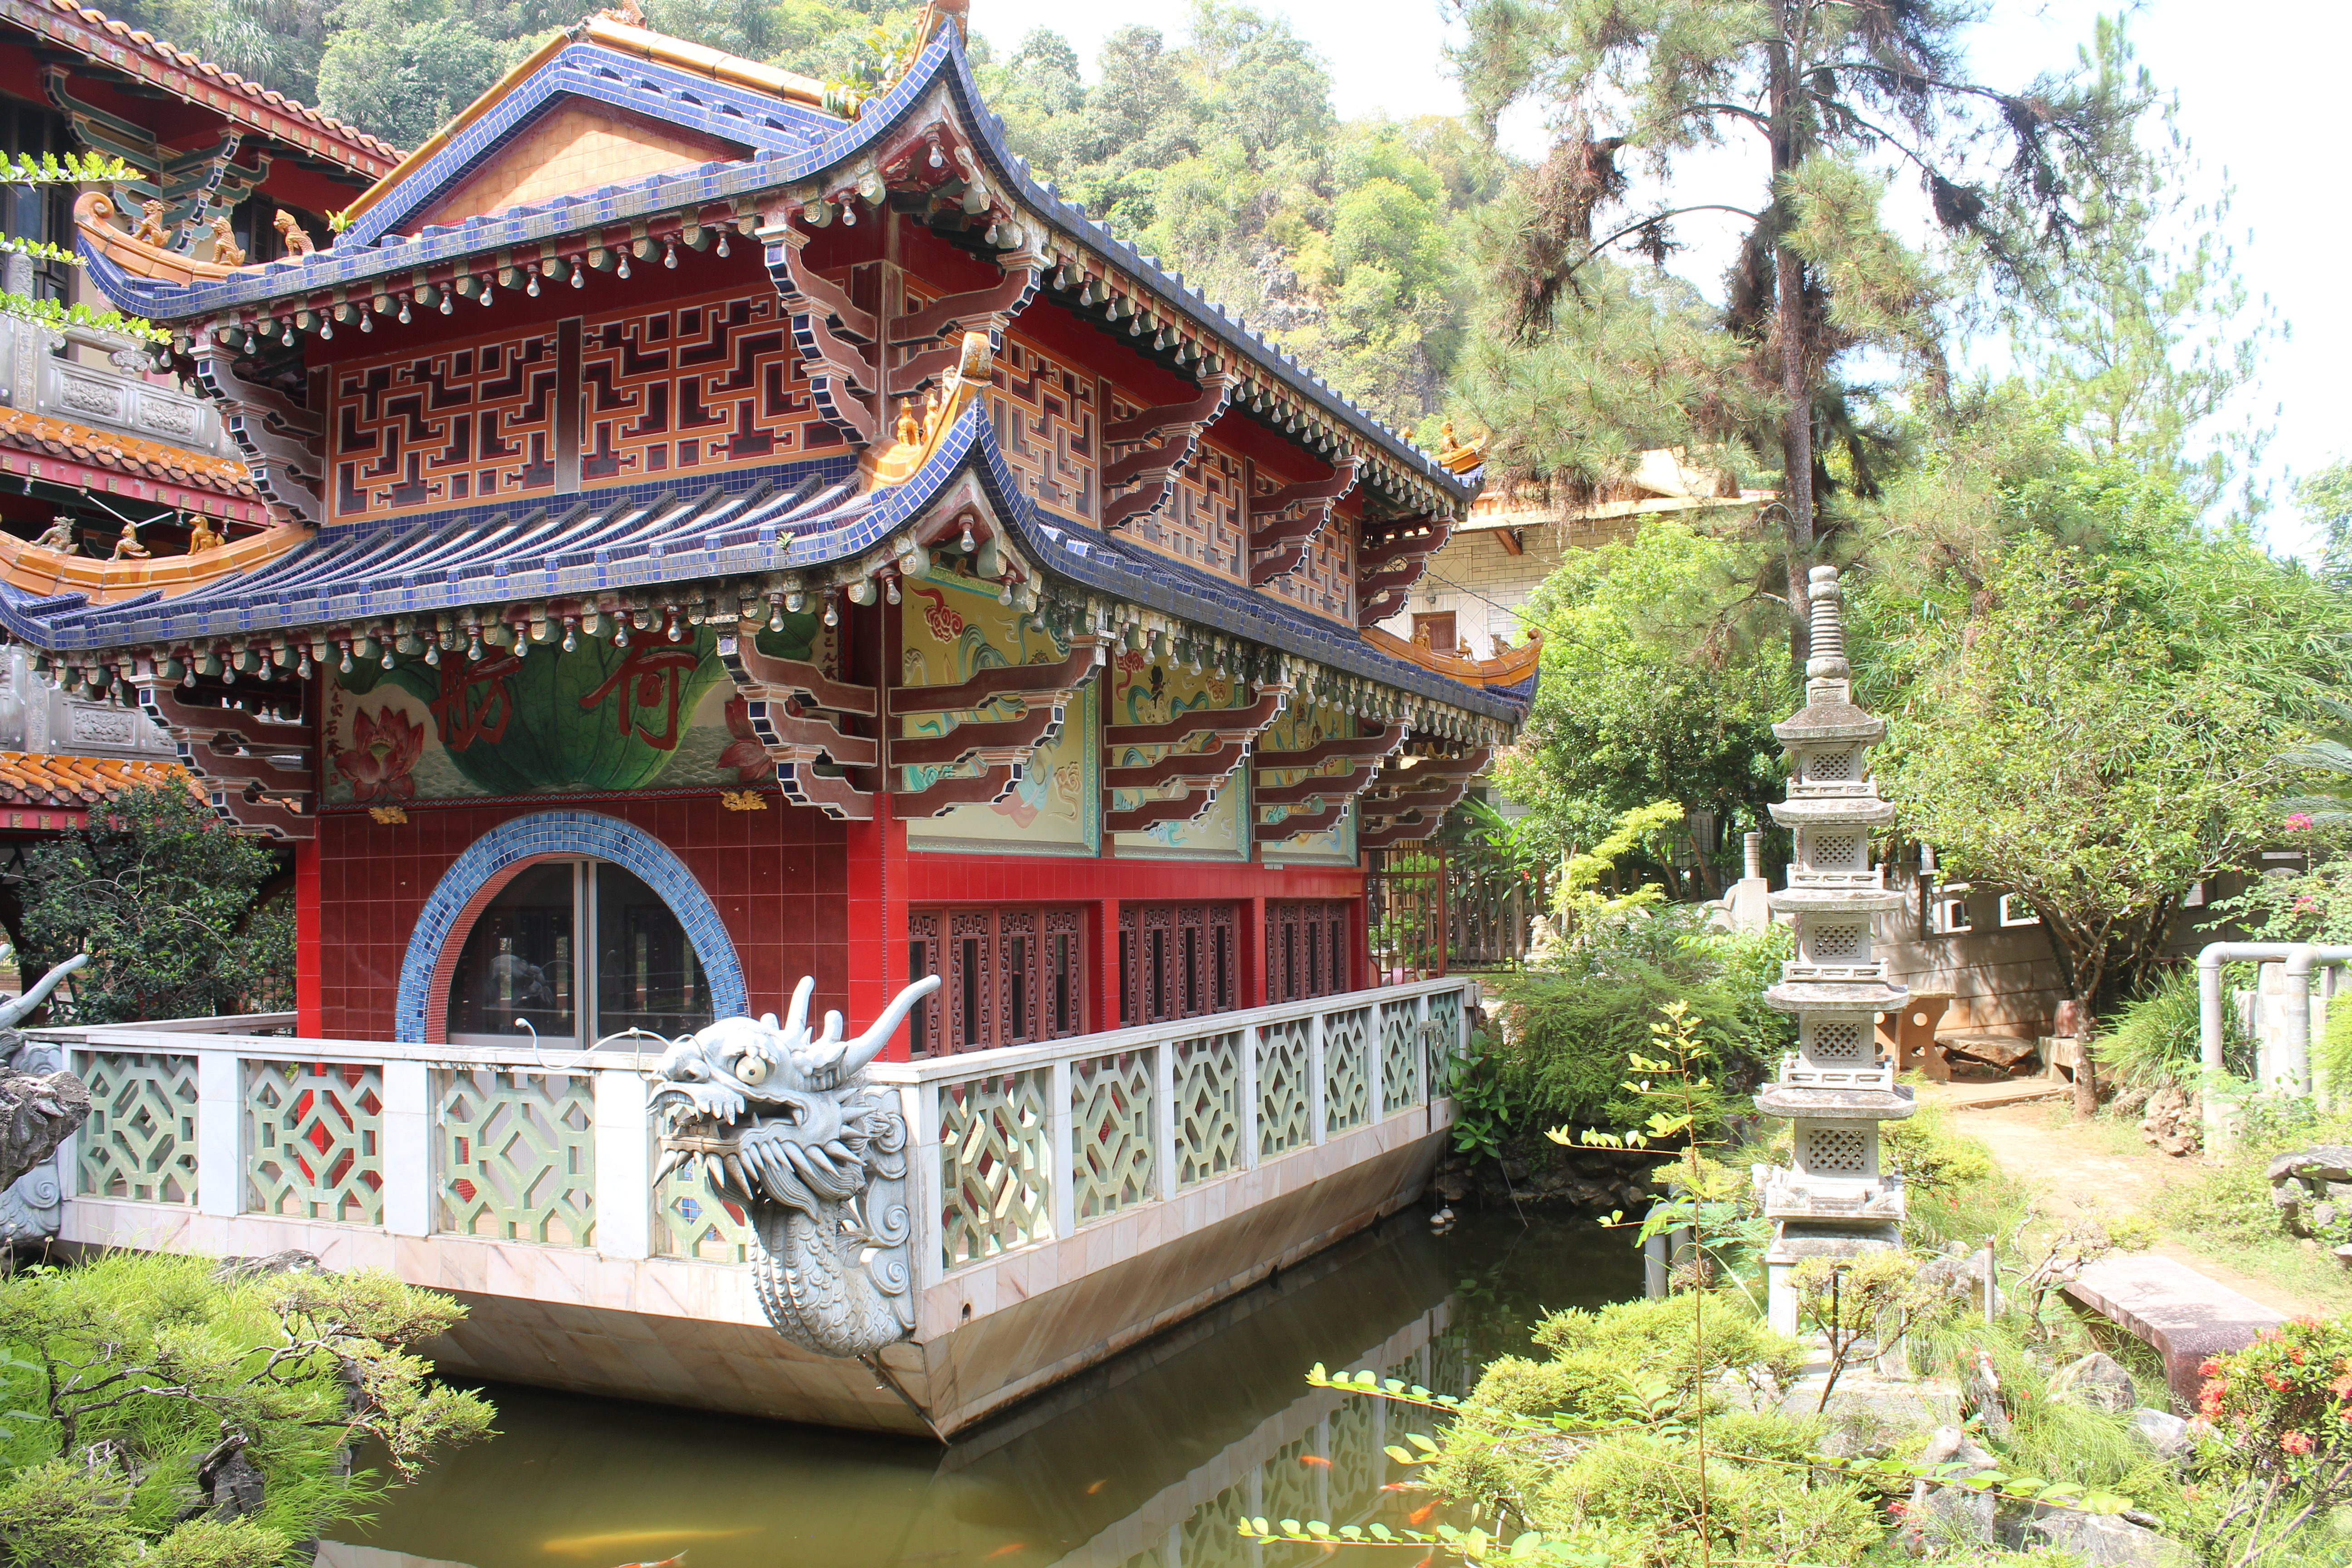 temple coloured mainly with red and purple with a pergola roof set in a small body of water with a larger temple just visible in the background